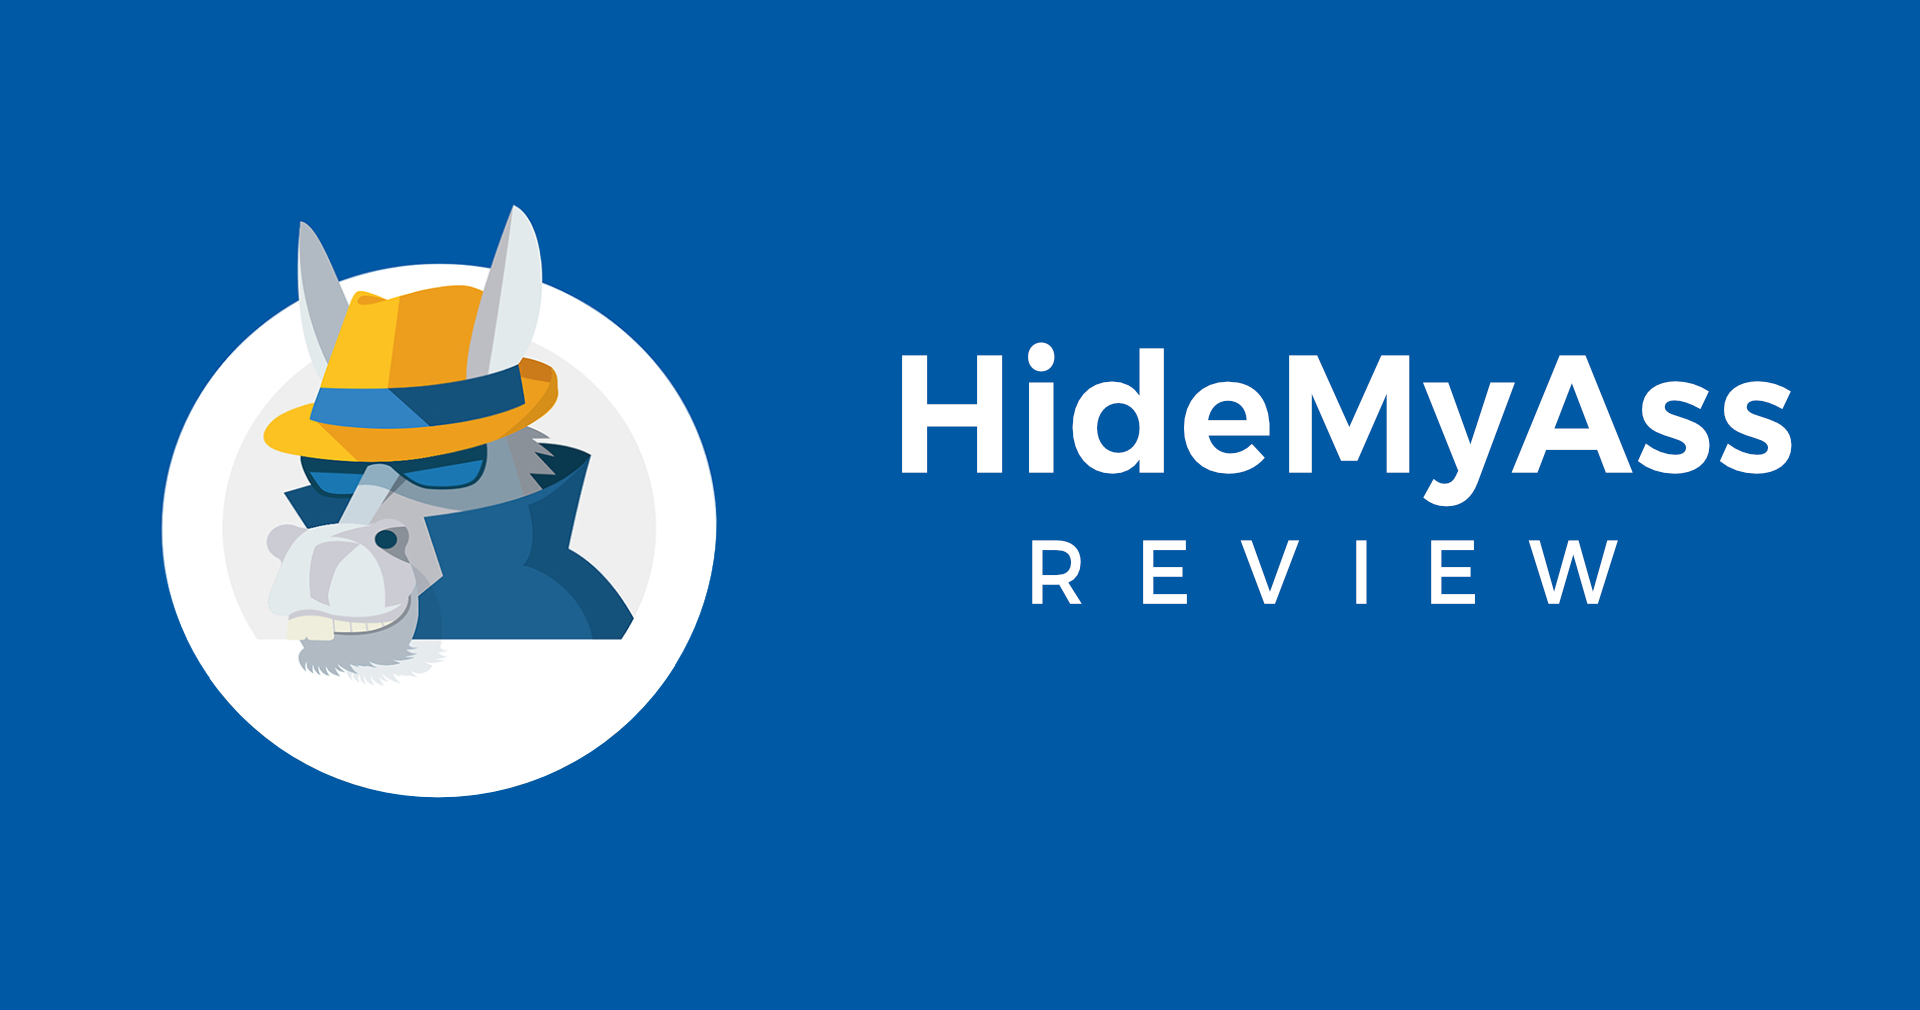 HideMyAss Version 5 Review: Everything You Should Know